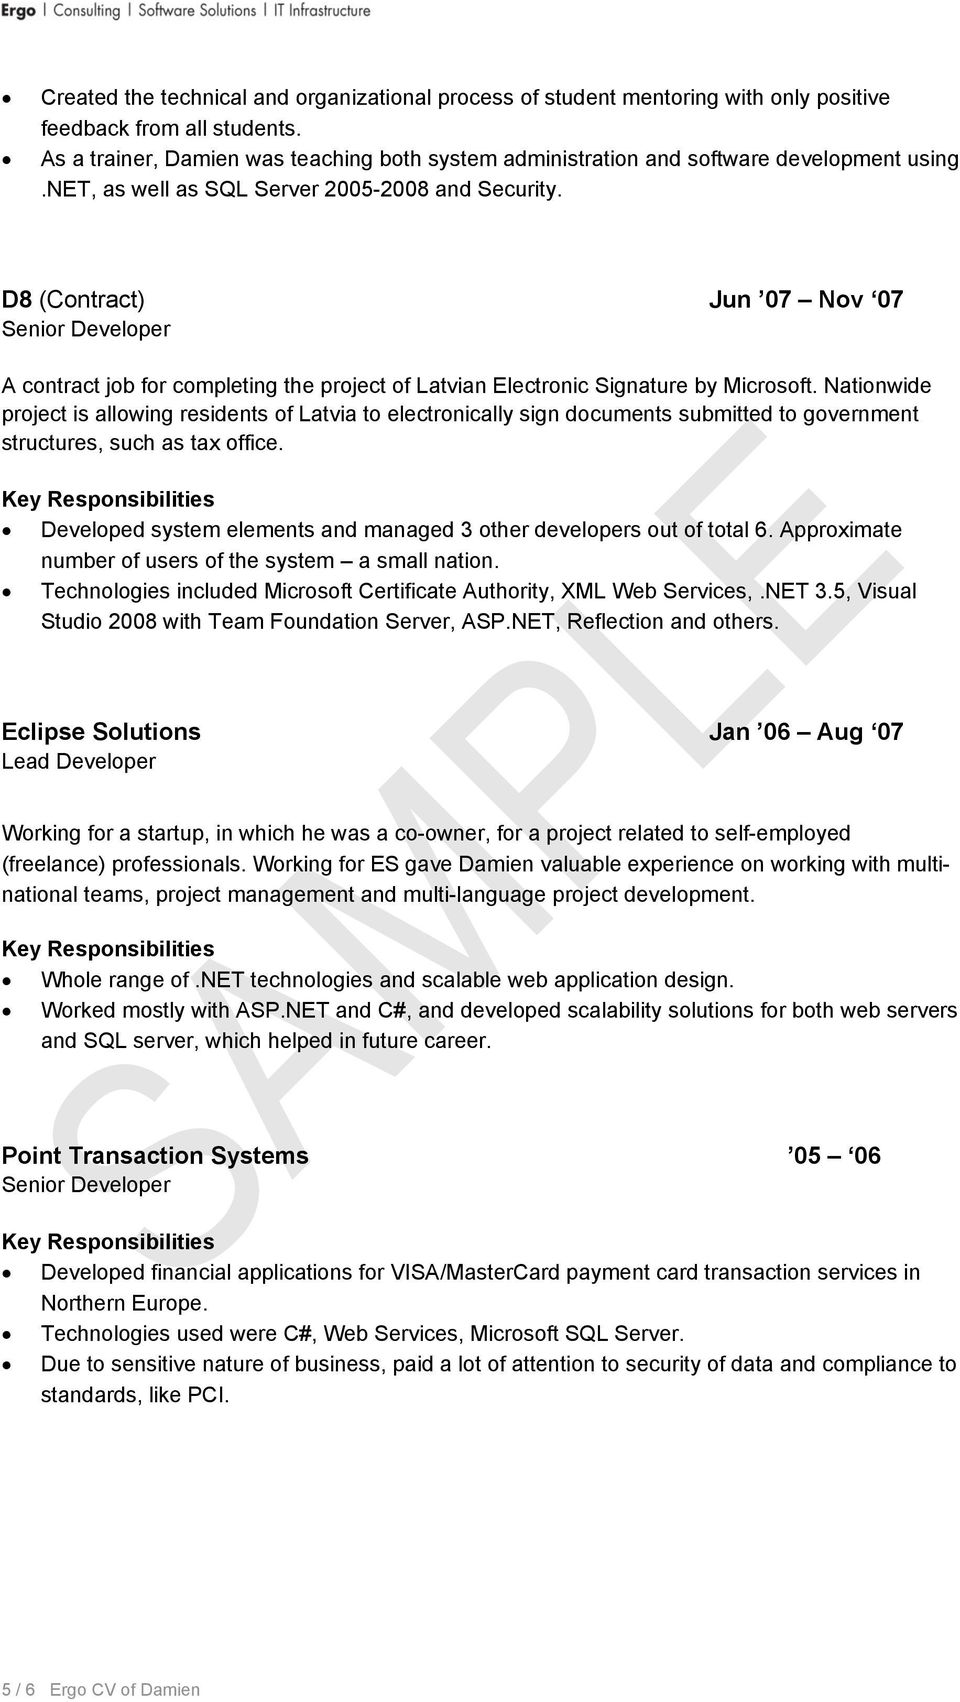 D8 (Contract) Jun 07 Nov 07 Senior Developer A contract job for completing the project of Latvian Electronic Signature by Microsoft.